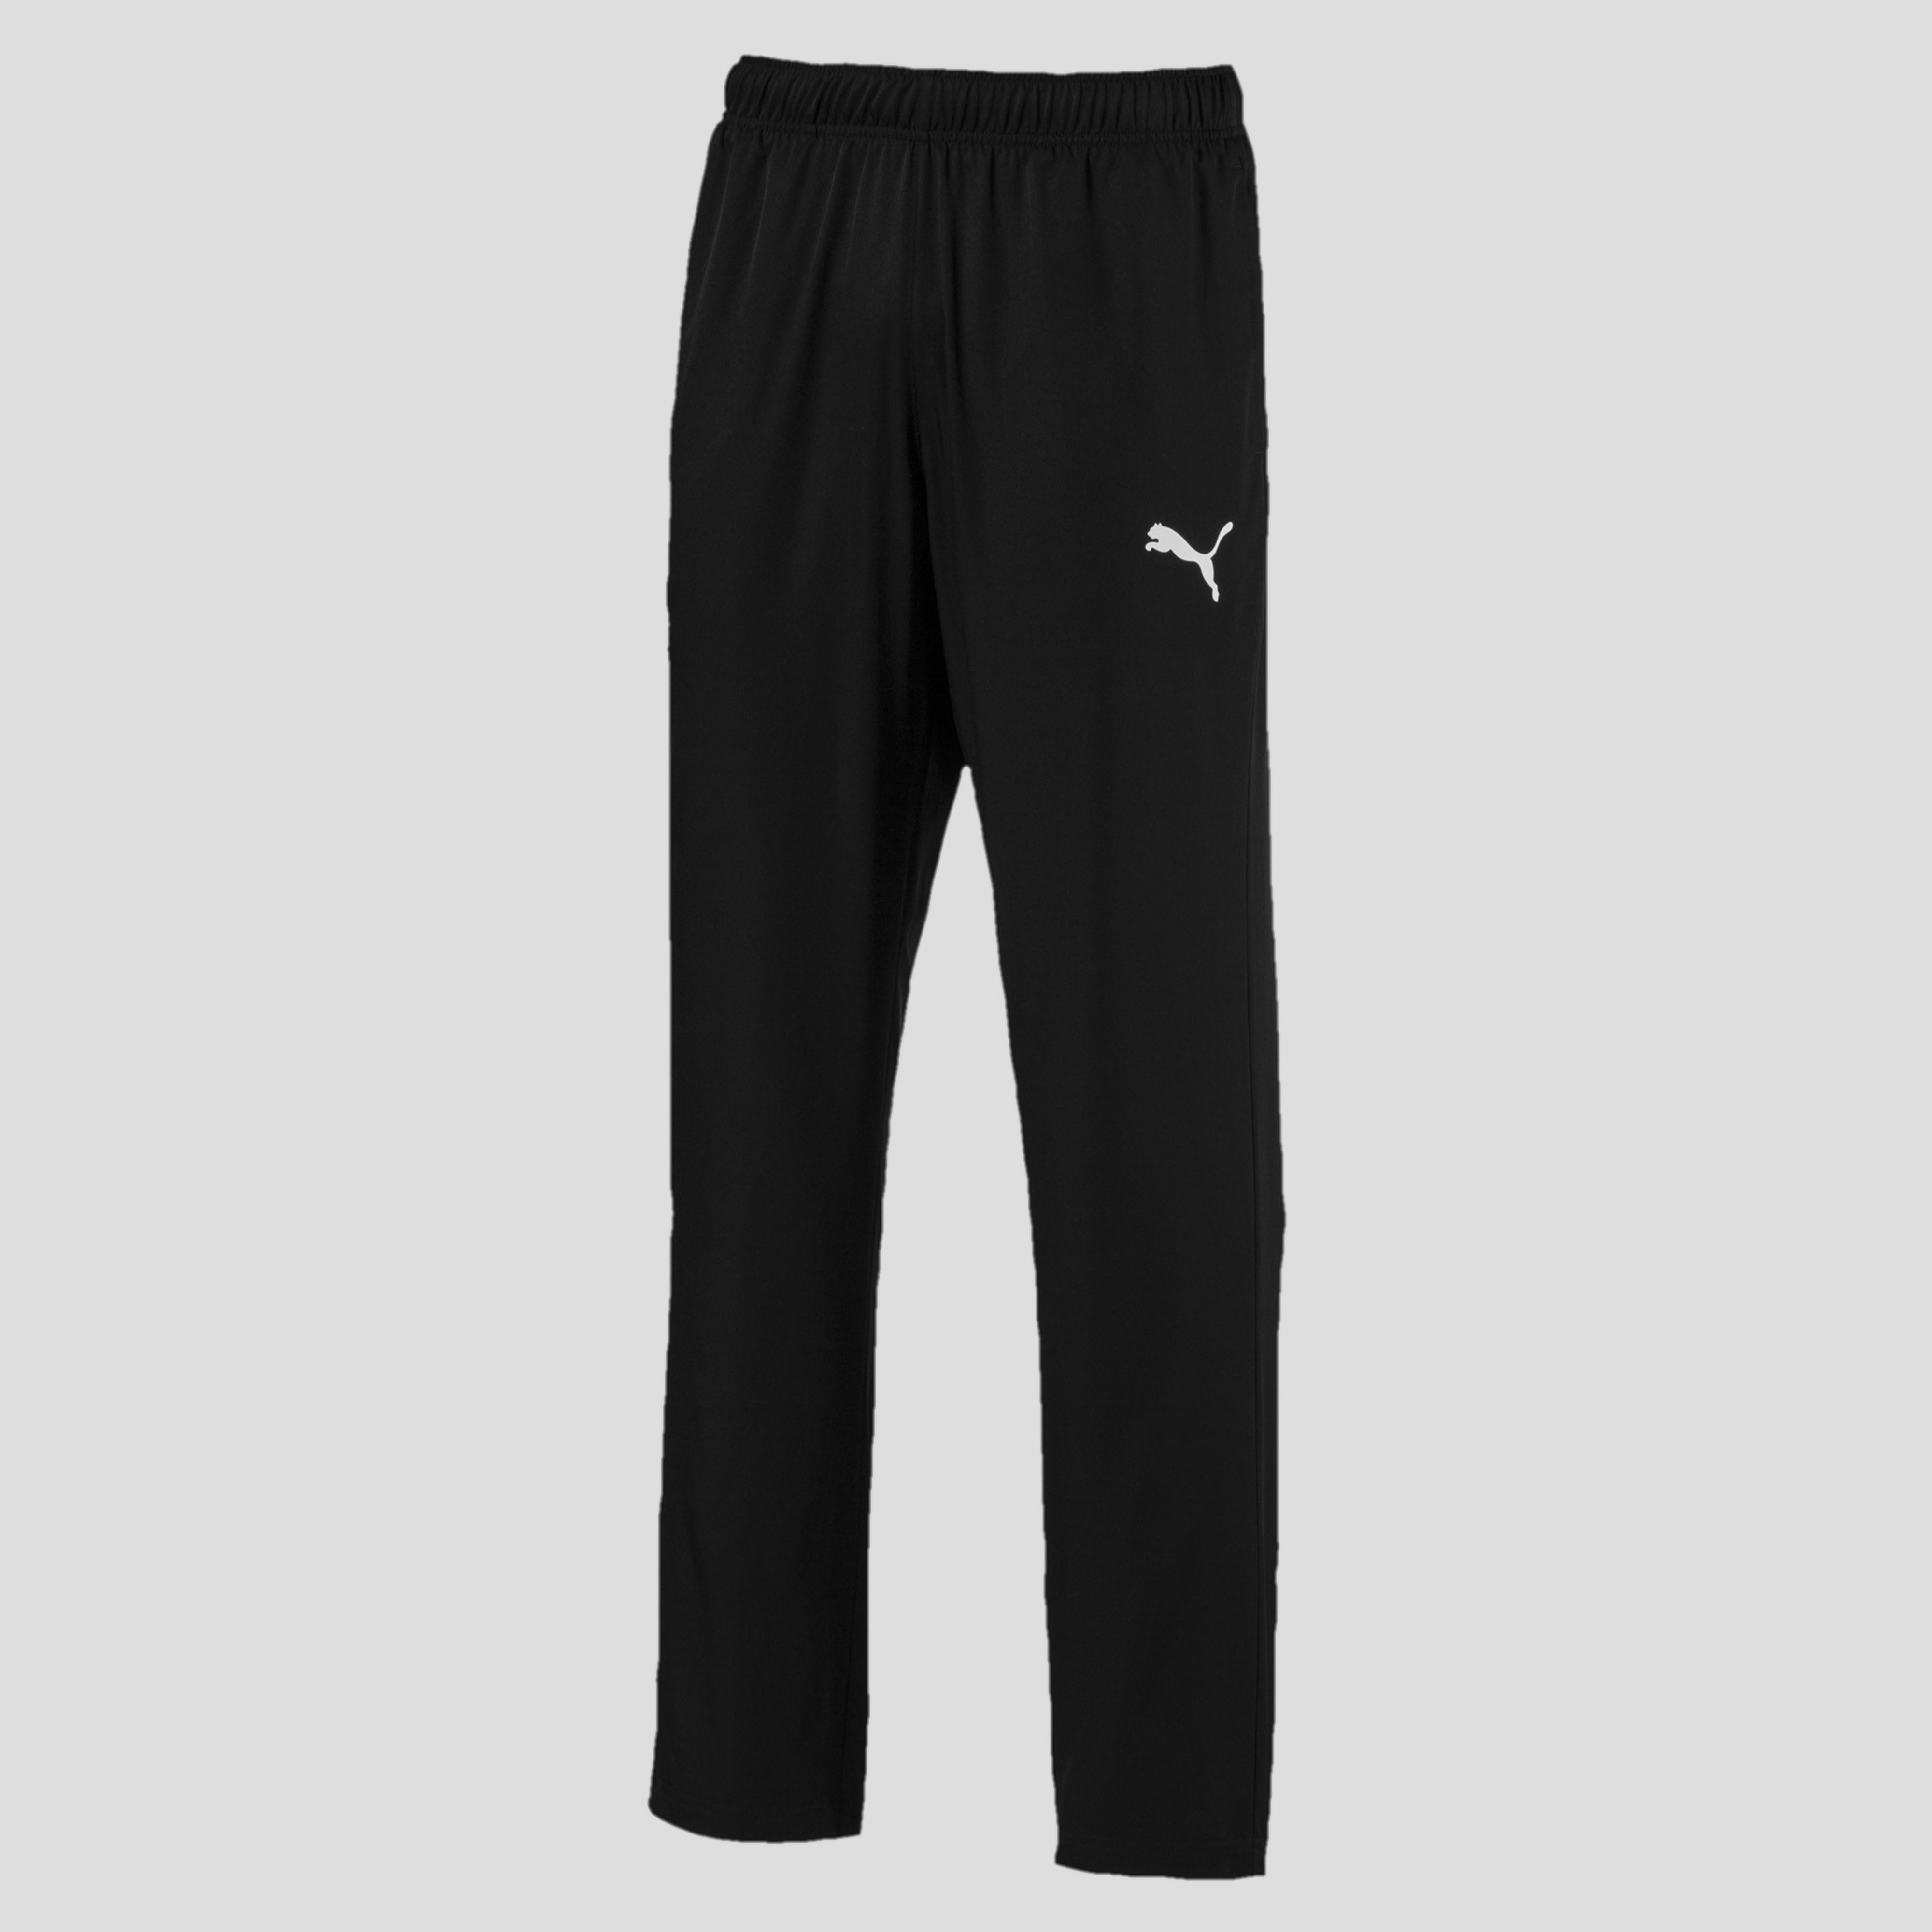 PUMA ACTIVE WOVEN TRAININGSBROEK ZWART HEREN